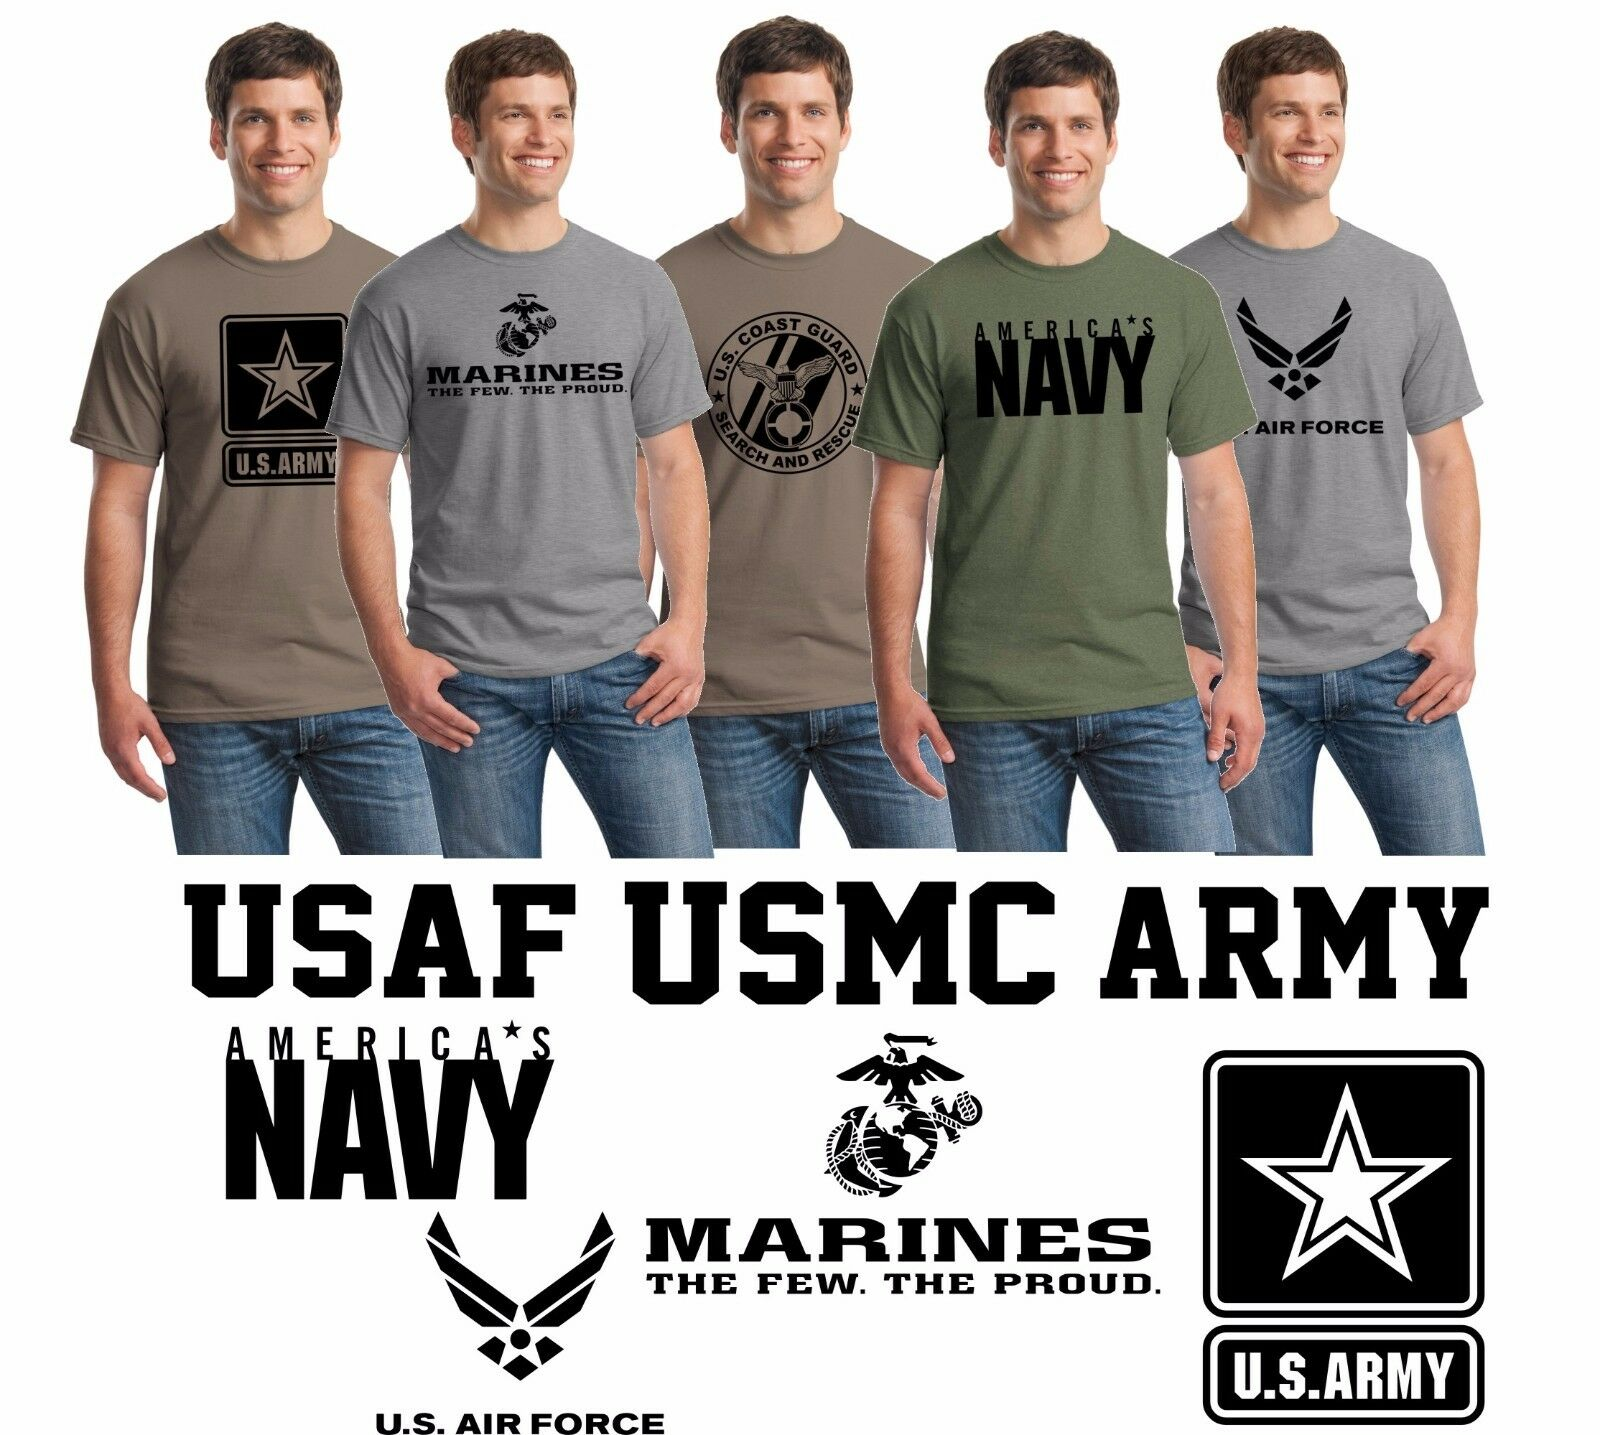 US-Army-Navy-Air-Force-USAF-Marines-USMC-Military-Physical-Training-PT-T-Shirts